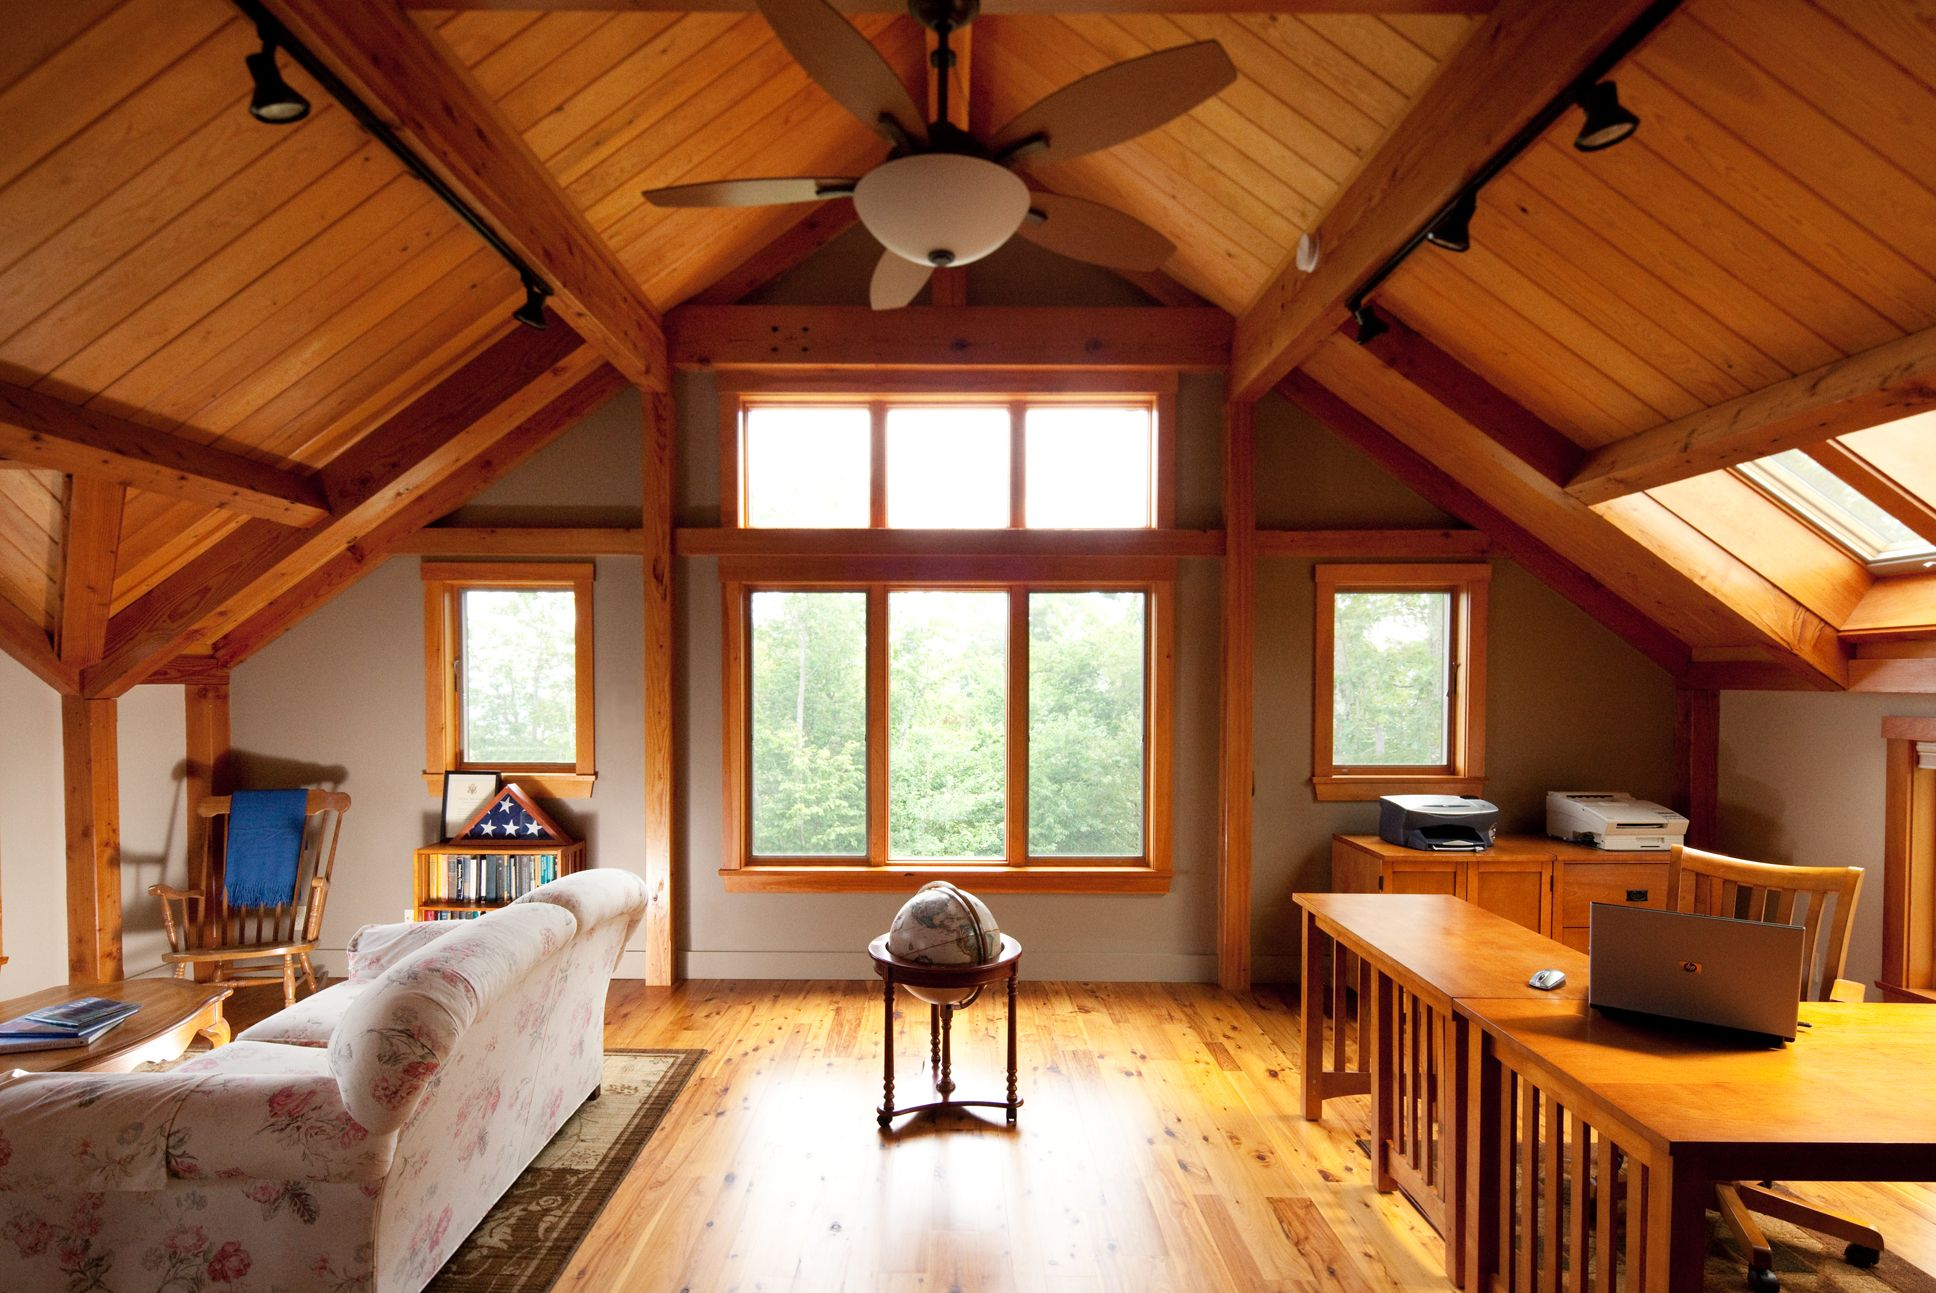 barn loftLoft Apartment | Barn Loft | barn apartment in 2019 | Barn ...